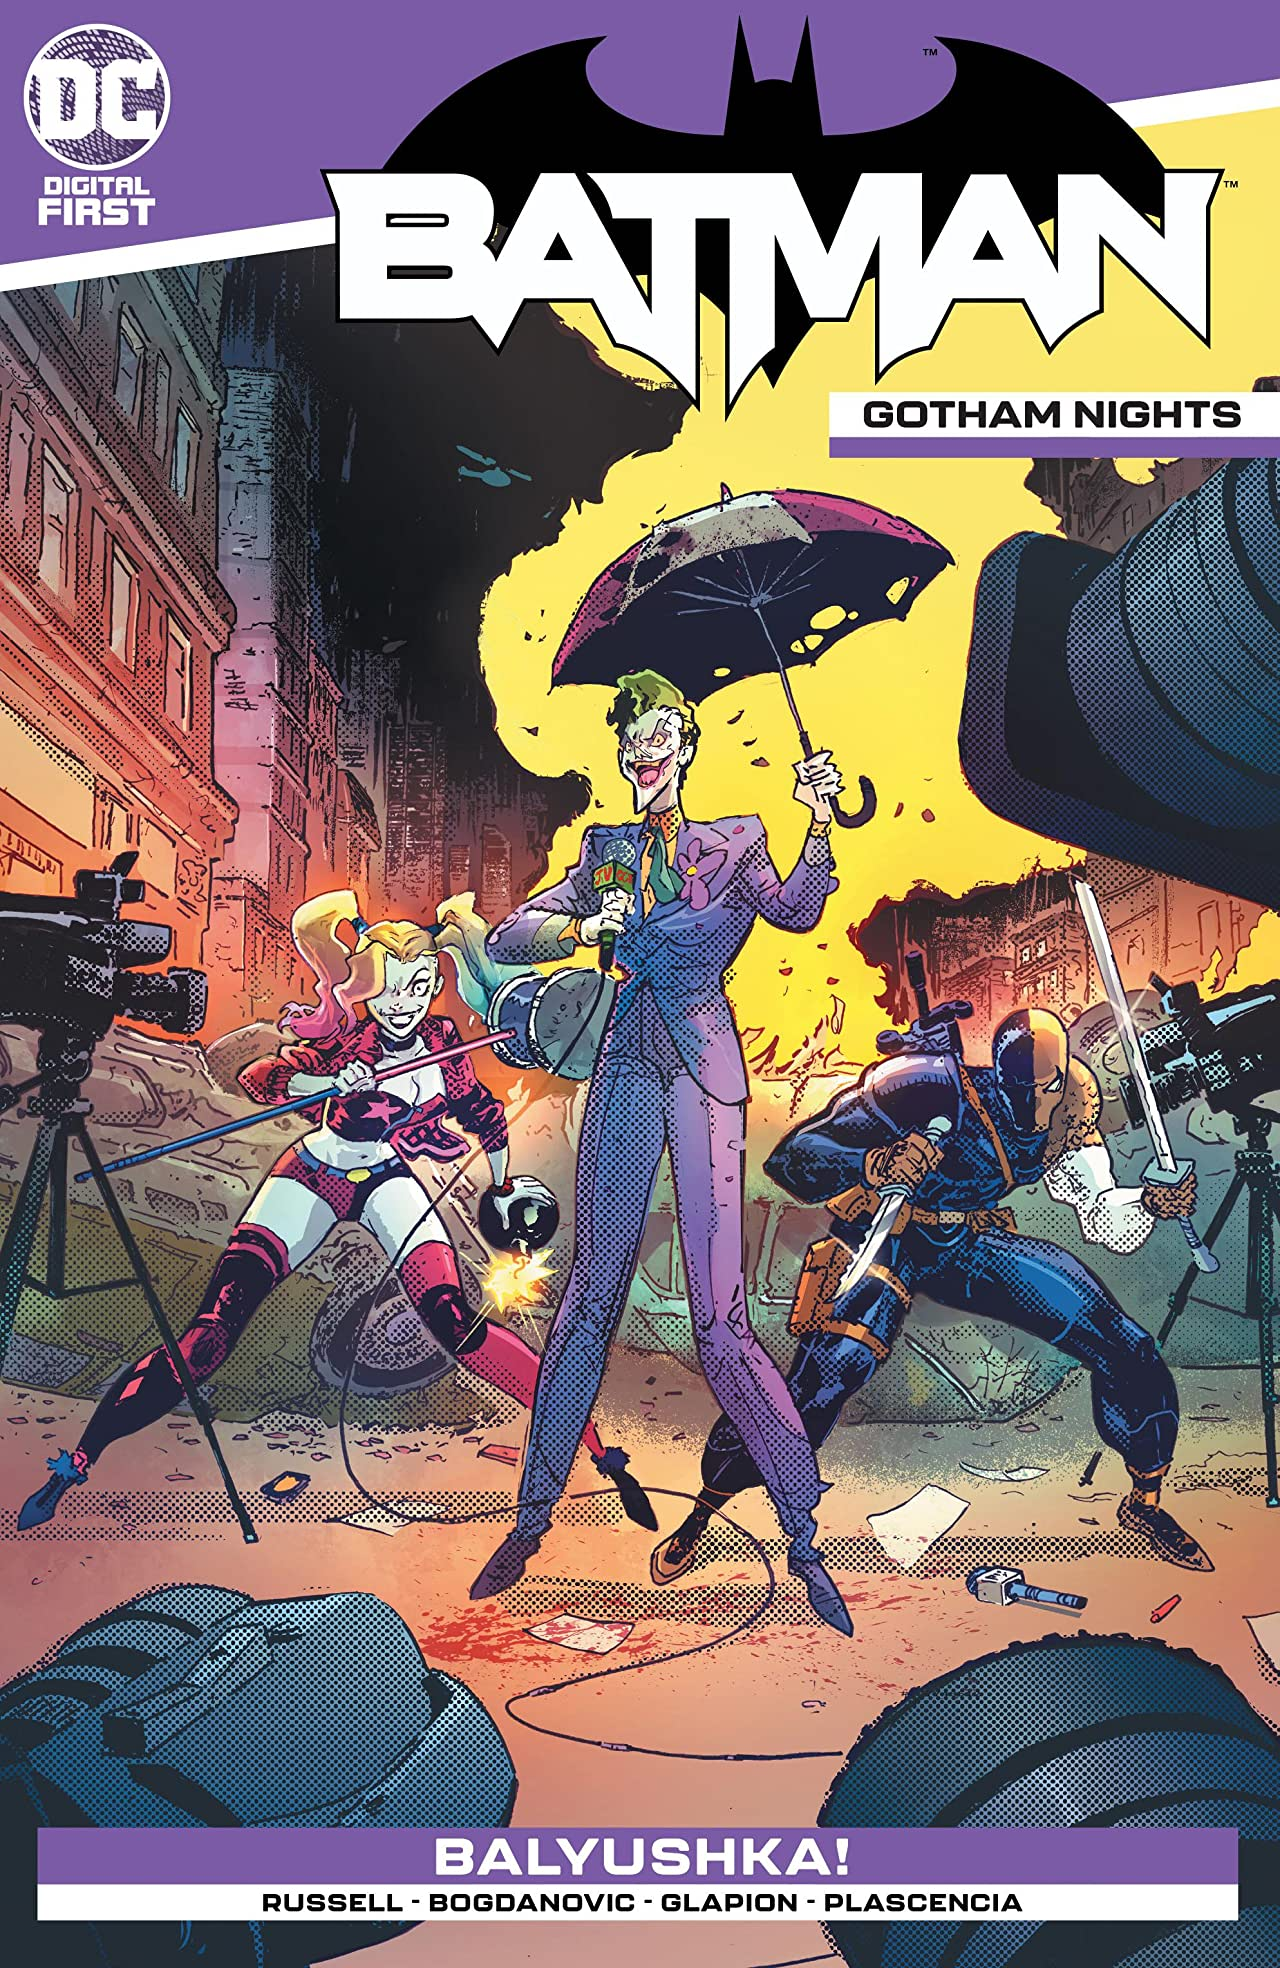 Batman: Gotham Nights Vol 1 6 (Digital)